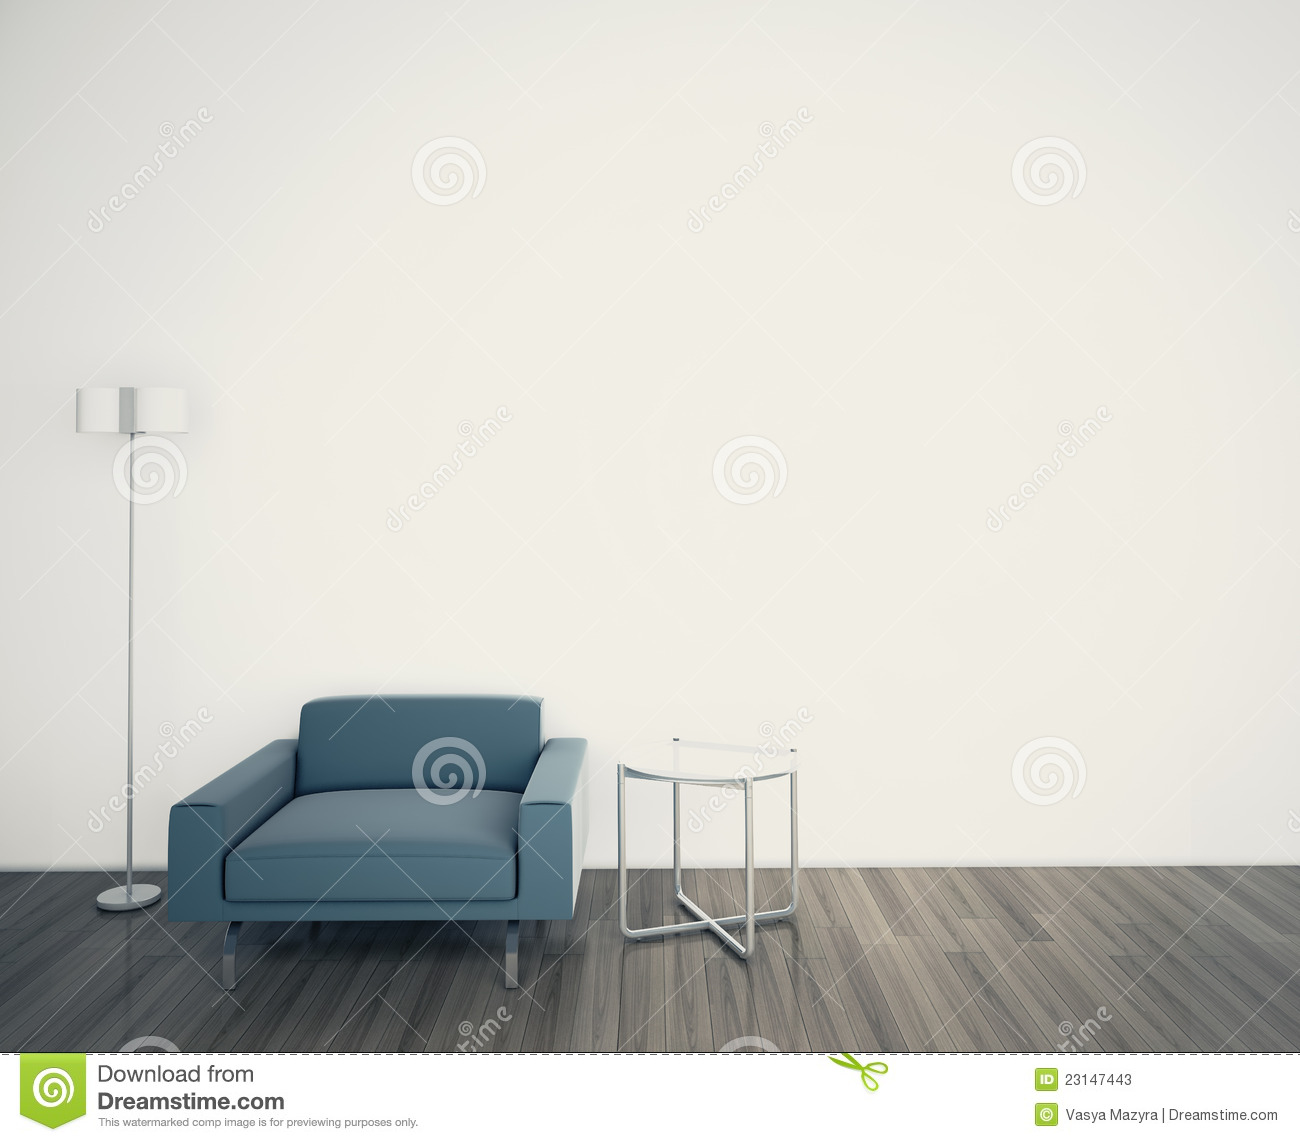 Minimal Modern Interior Armchair FACE A BLANK WALL Stock Photos ...